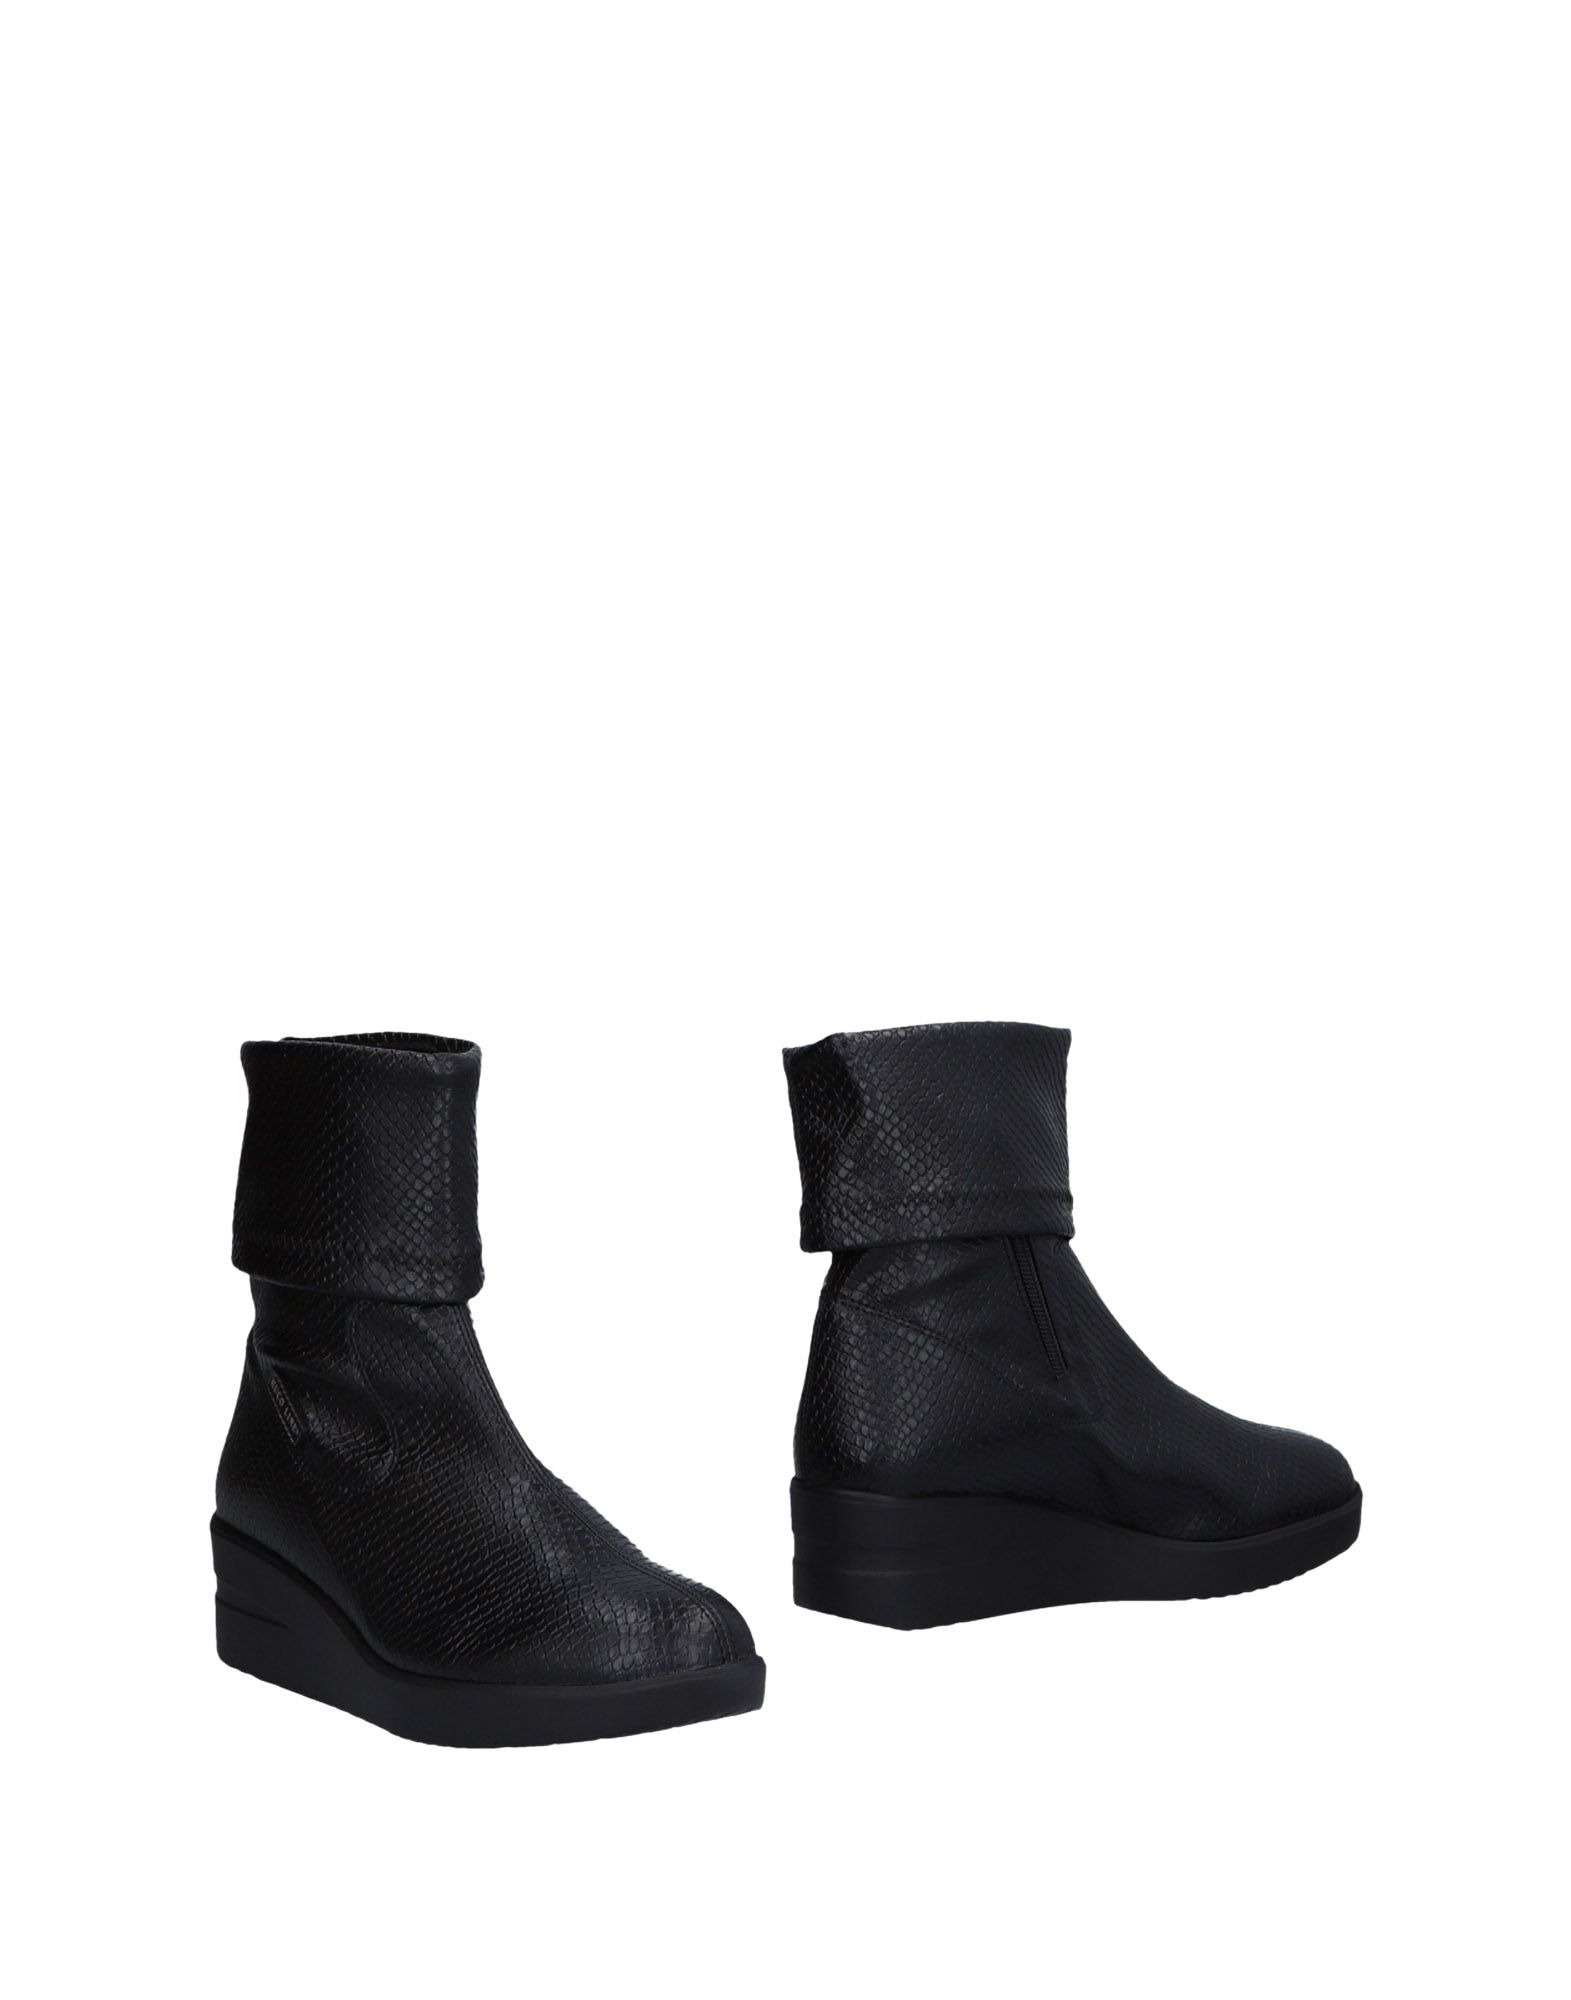 Bottine Ruco Line Femme - Bottines Ruco Line Noir Chaussures casual sauvages